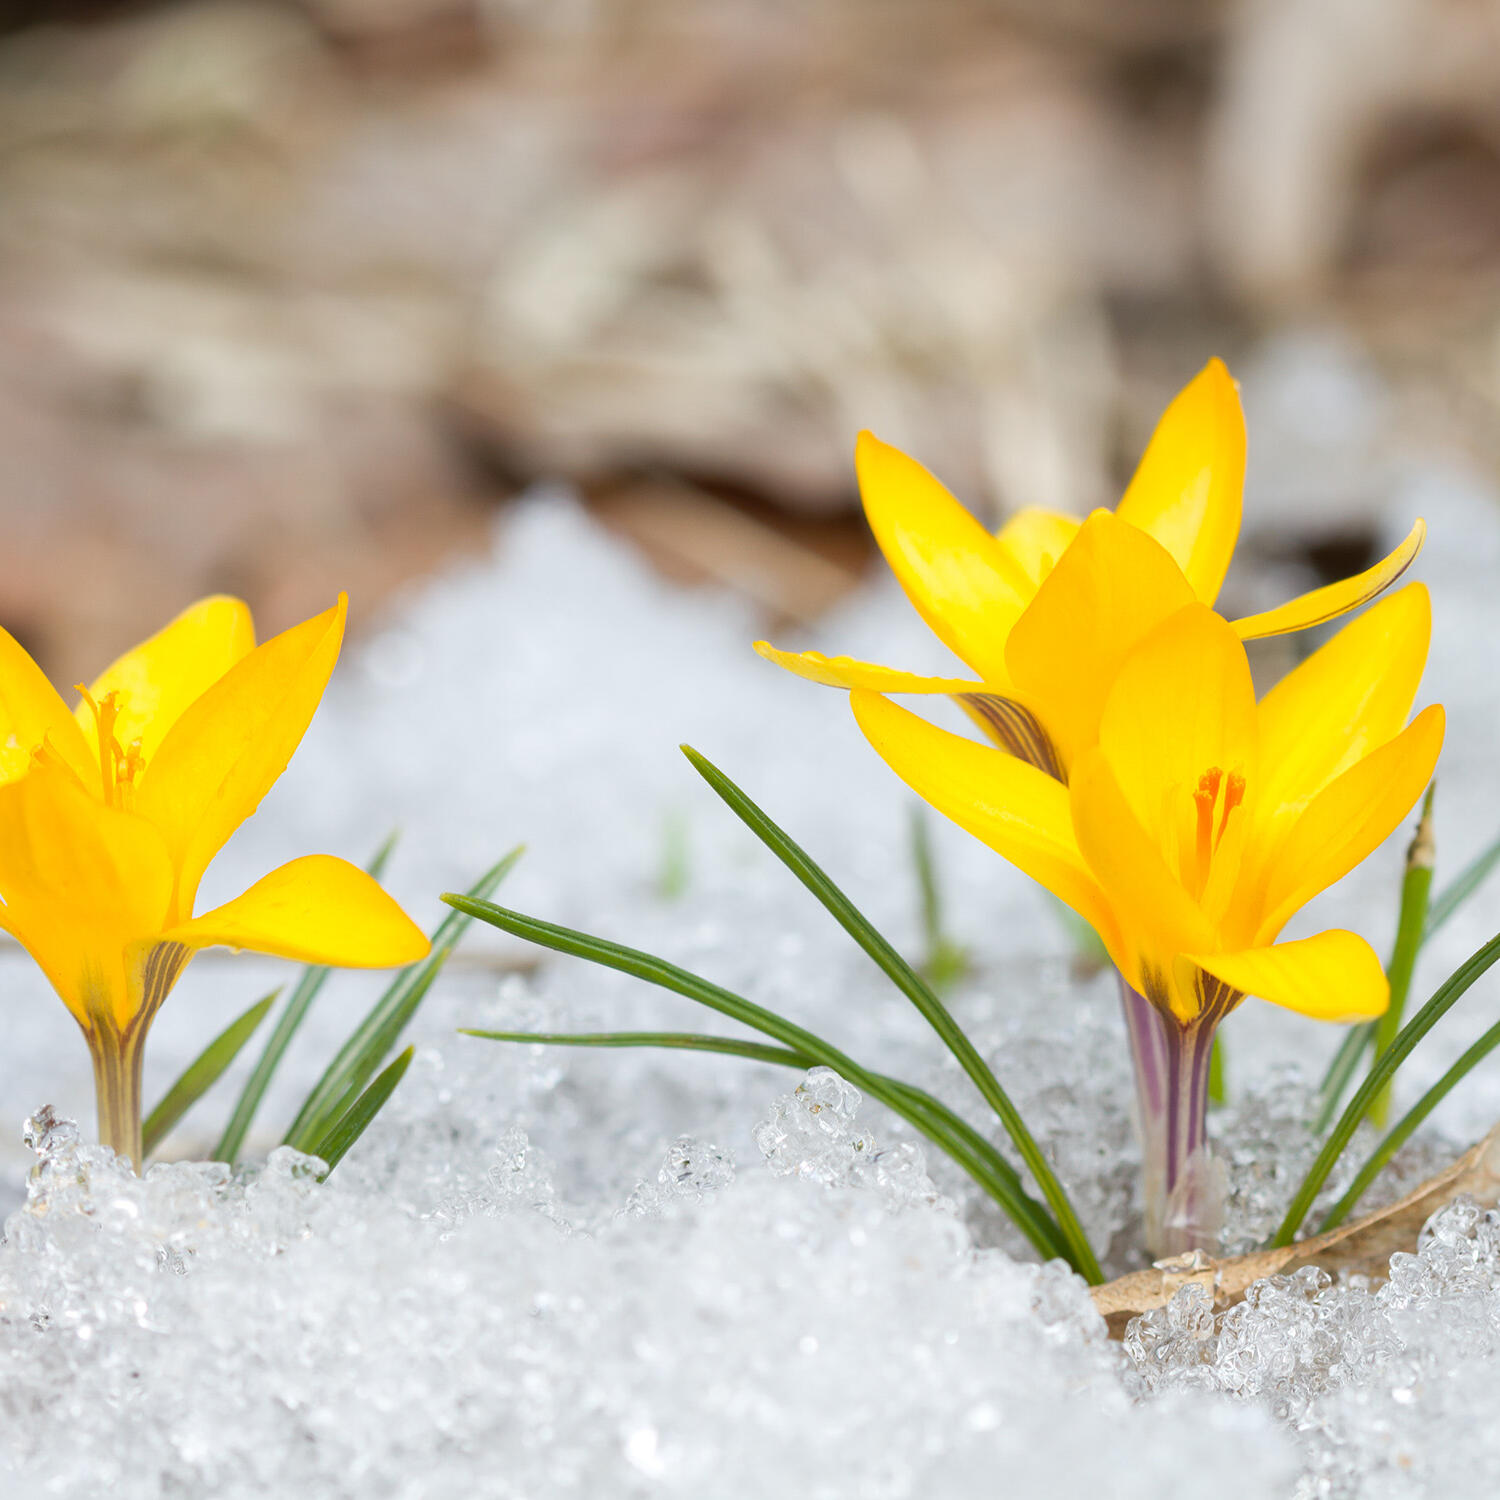 Yellow flowers blooming from snow